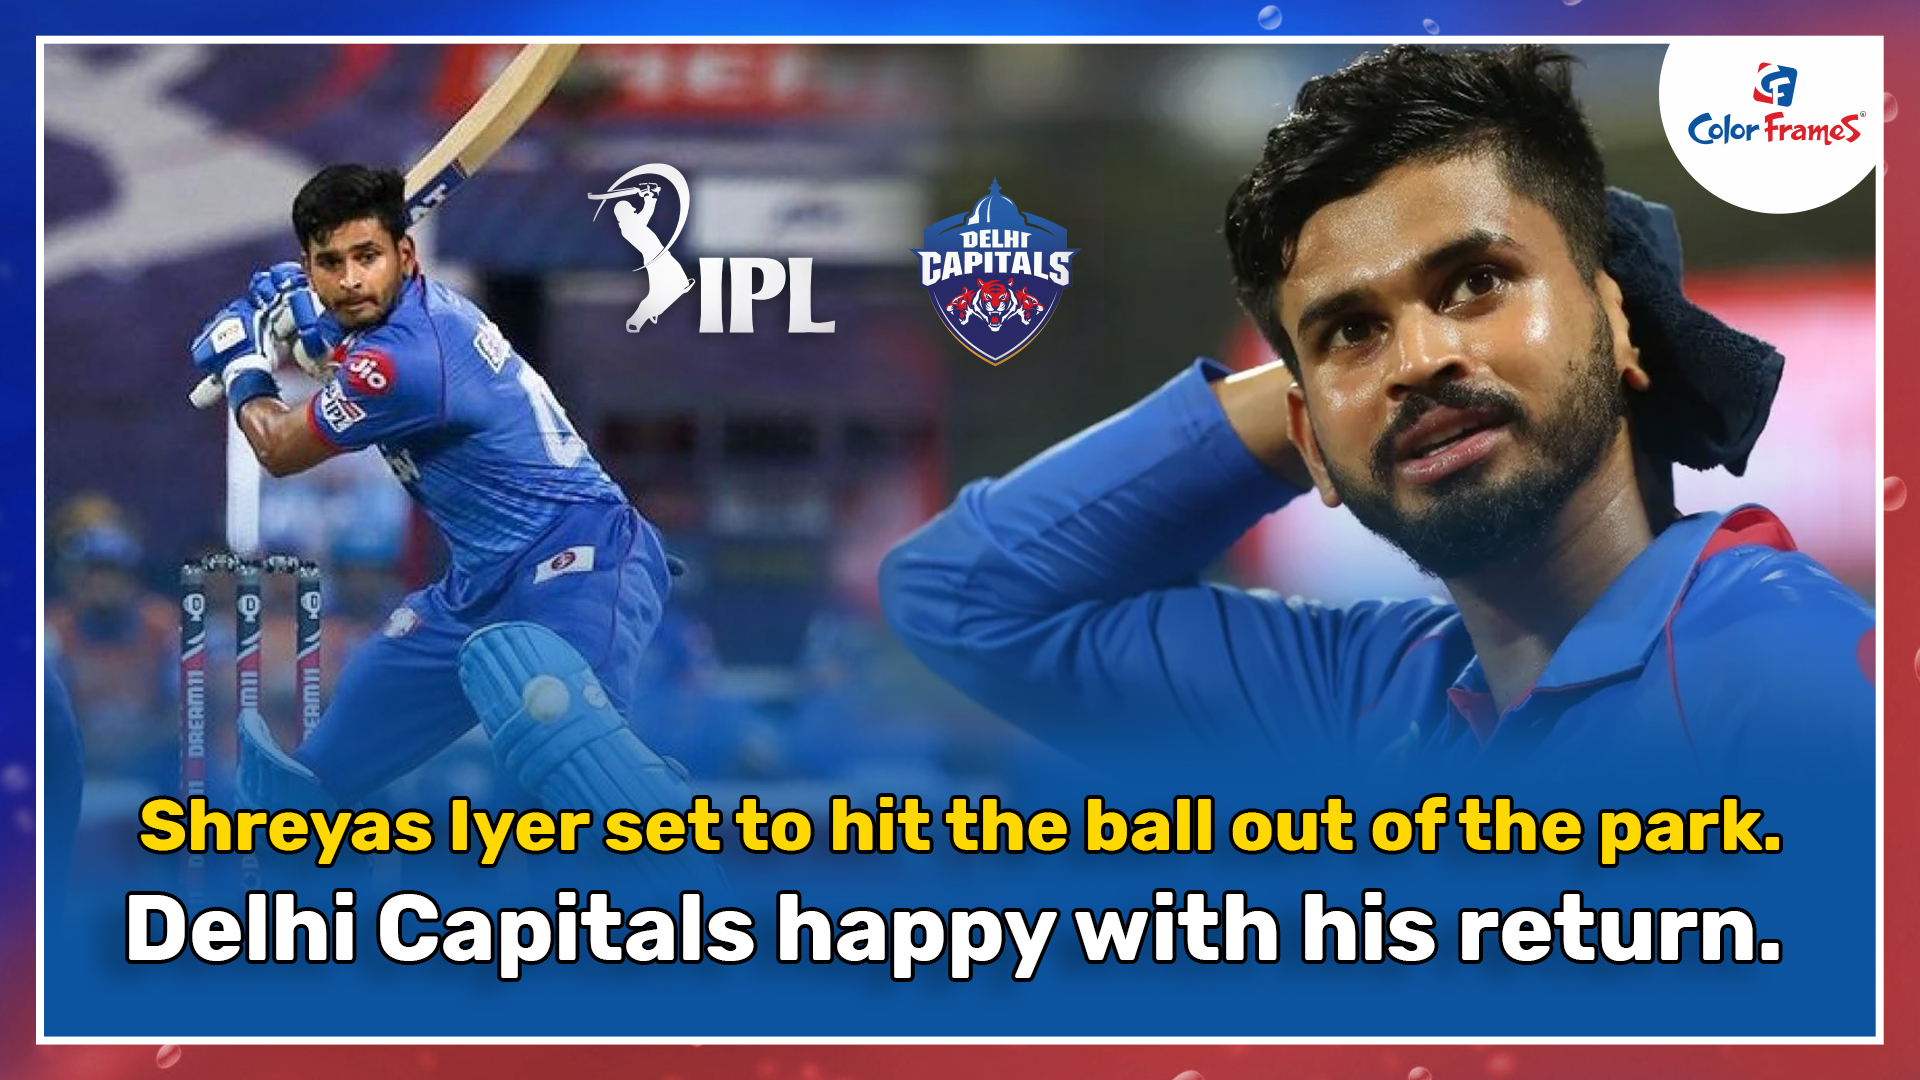 Shreyas Iyer set to hit the ball out of the park.  Delhi Capitals happy with his return.